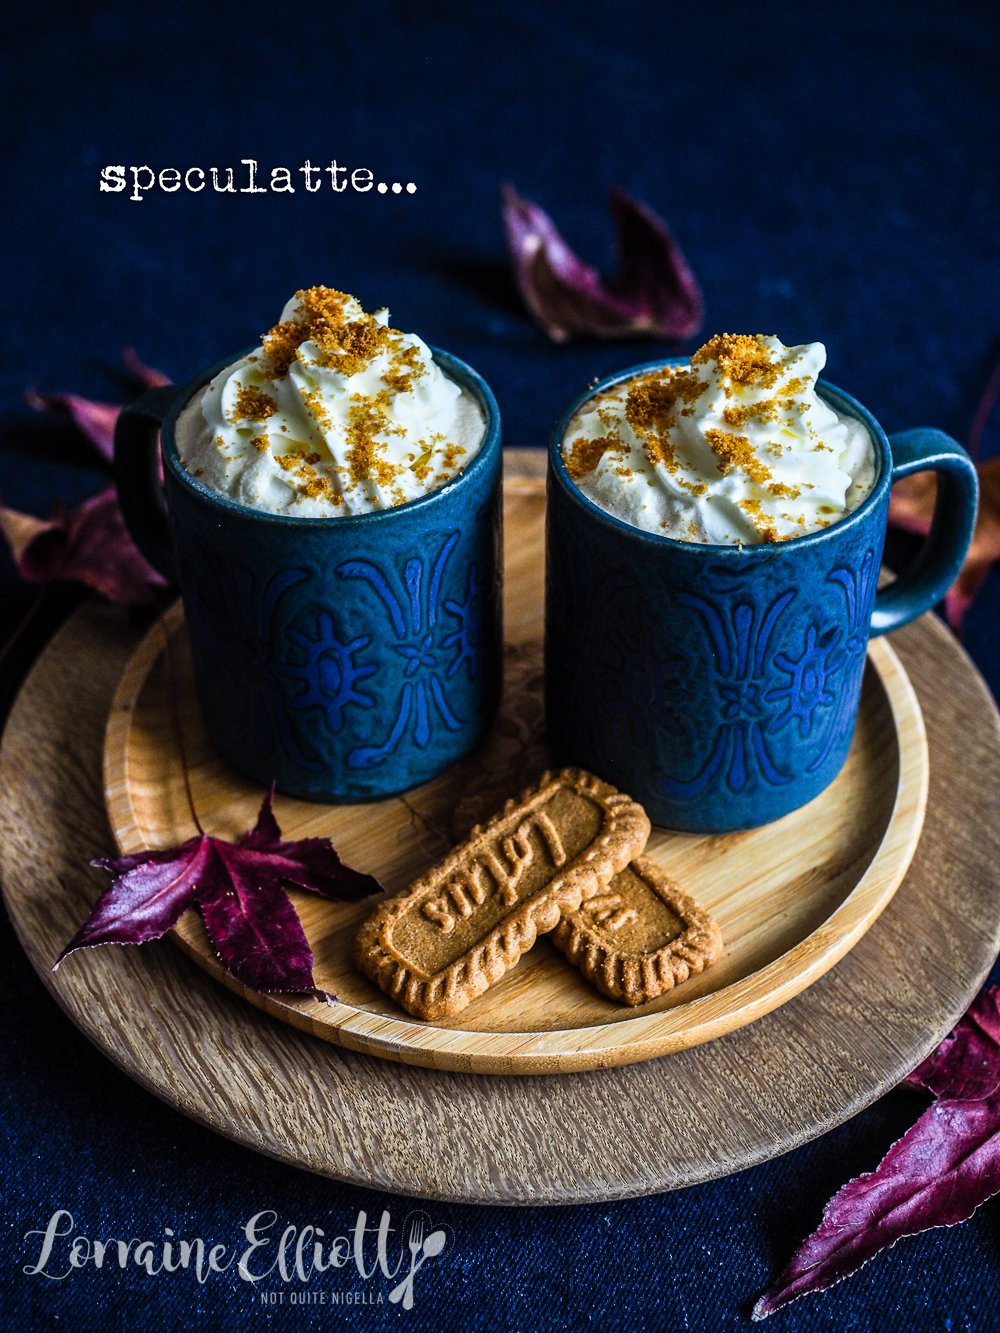 Speculatte aka Speculoos Cafe Latte Drink